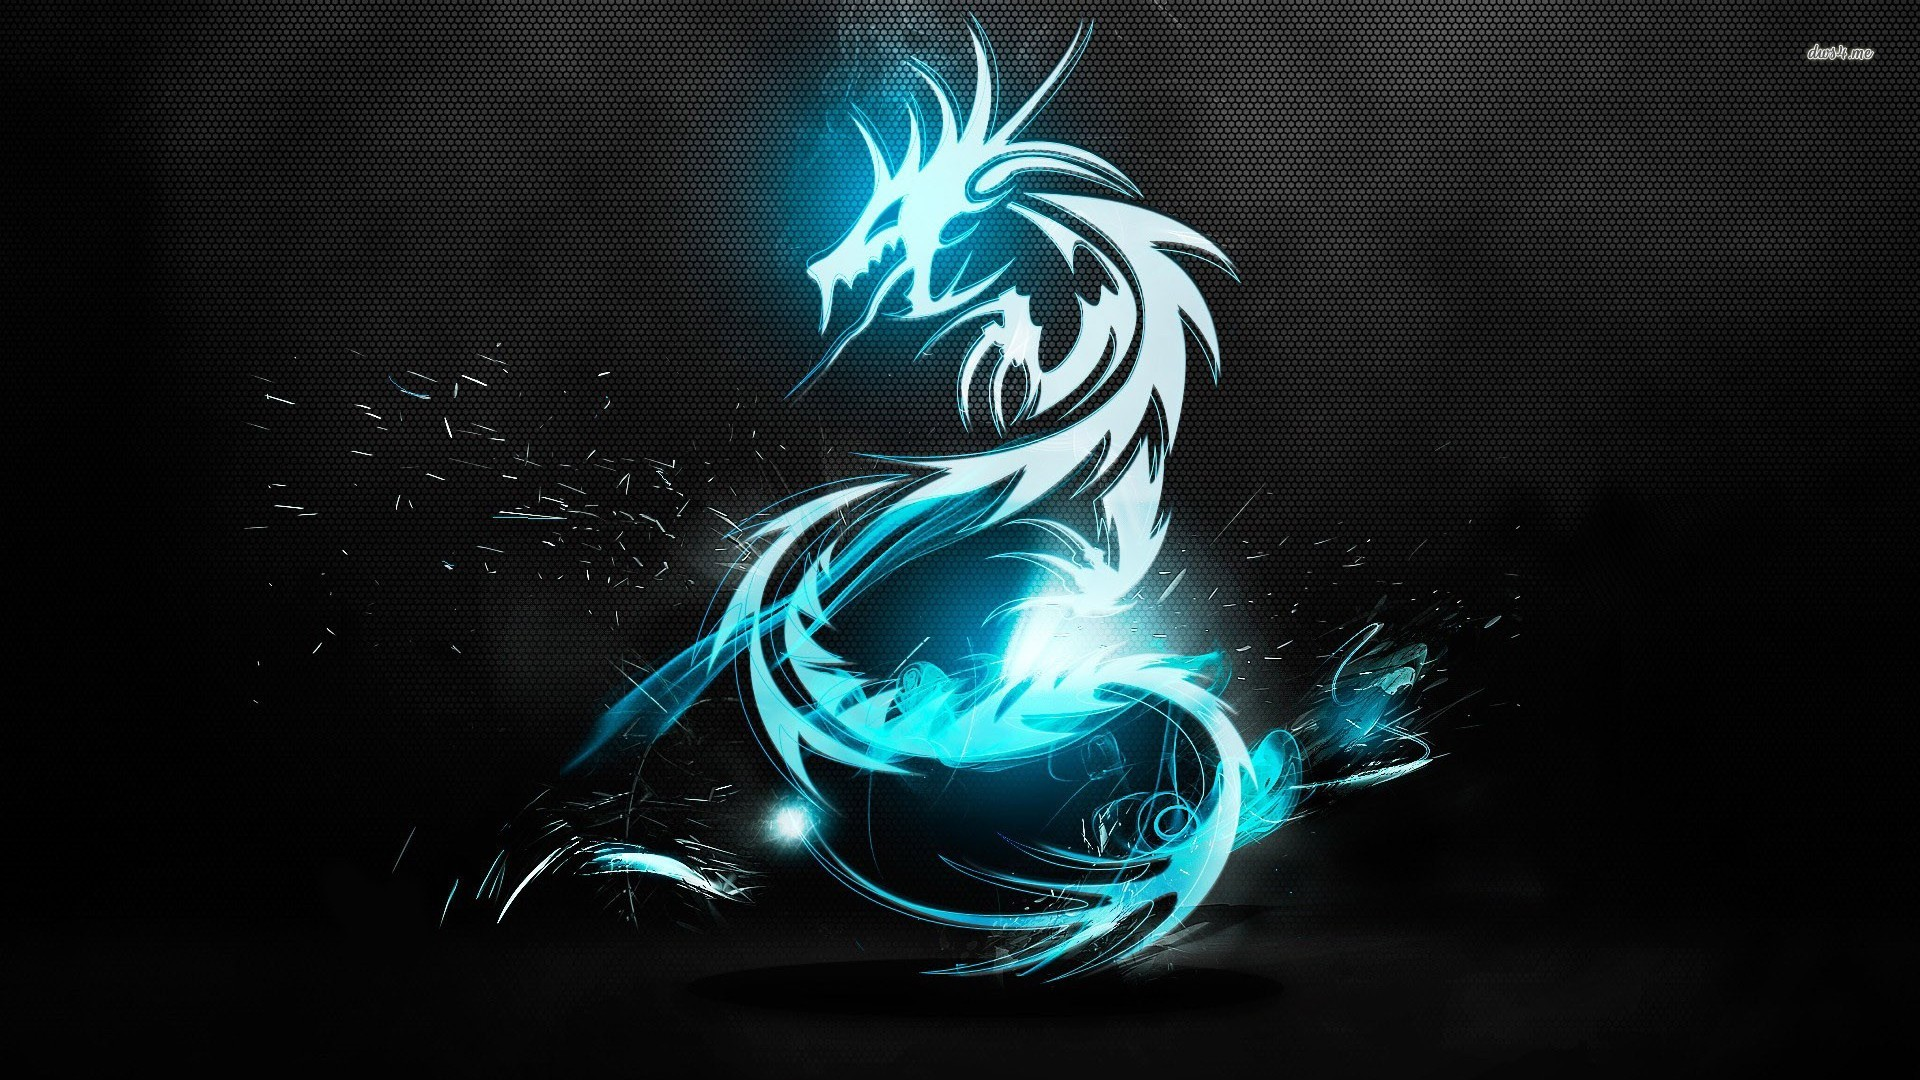 Dragon Wallpapers, Creative Dragon Wallpapers - #WP:FP51 GZHaixieR